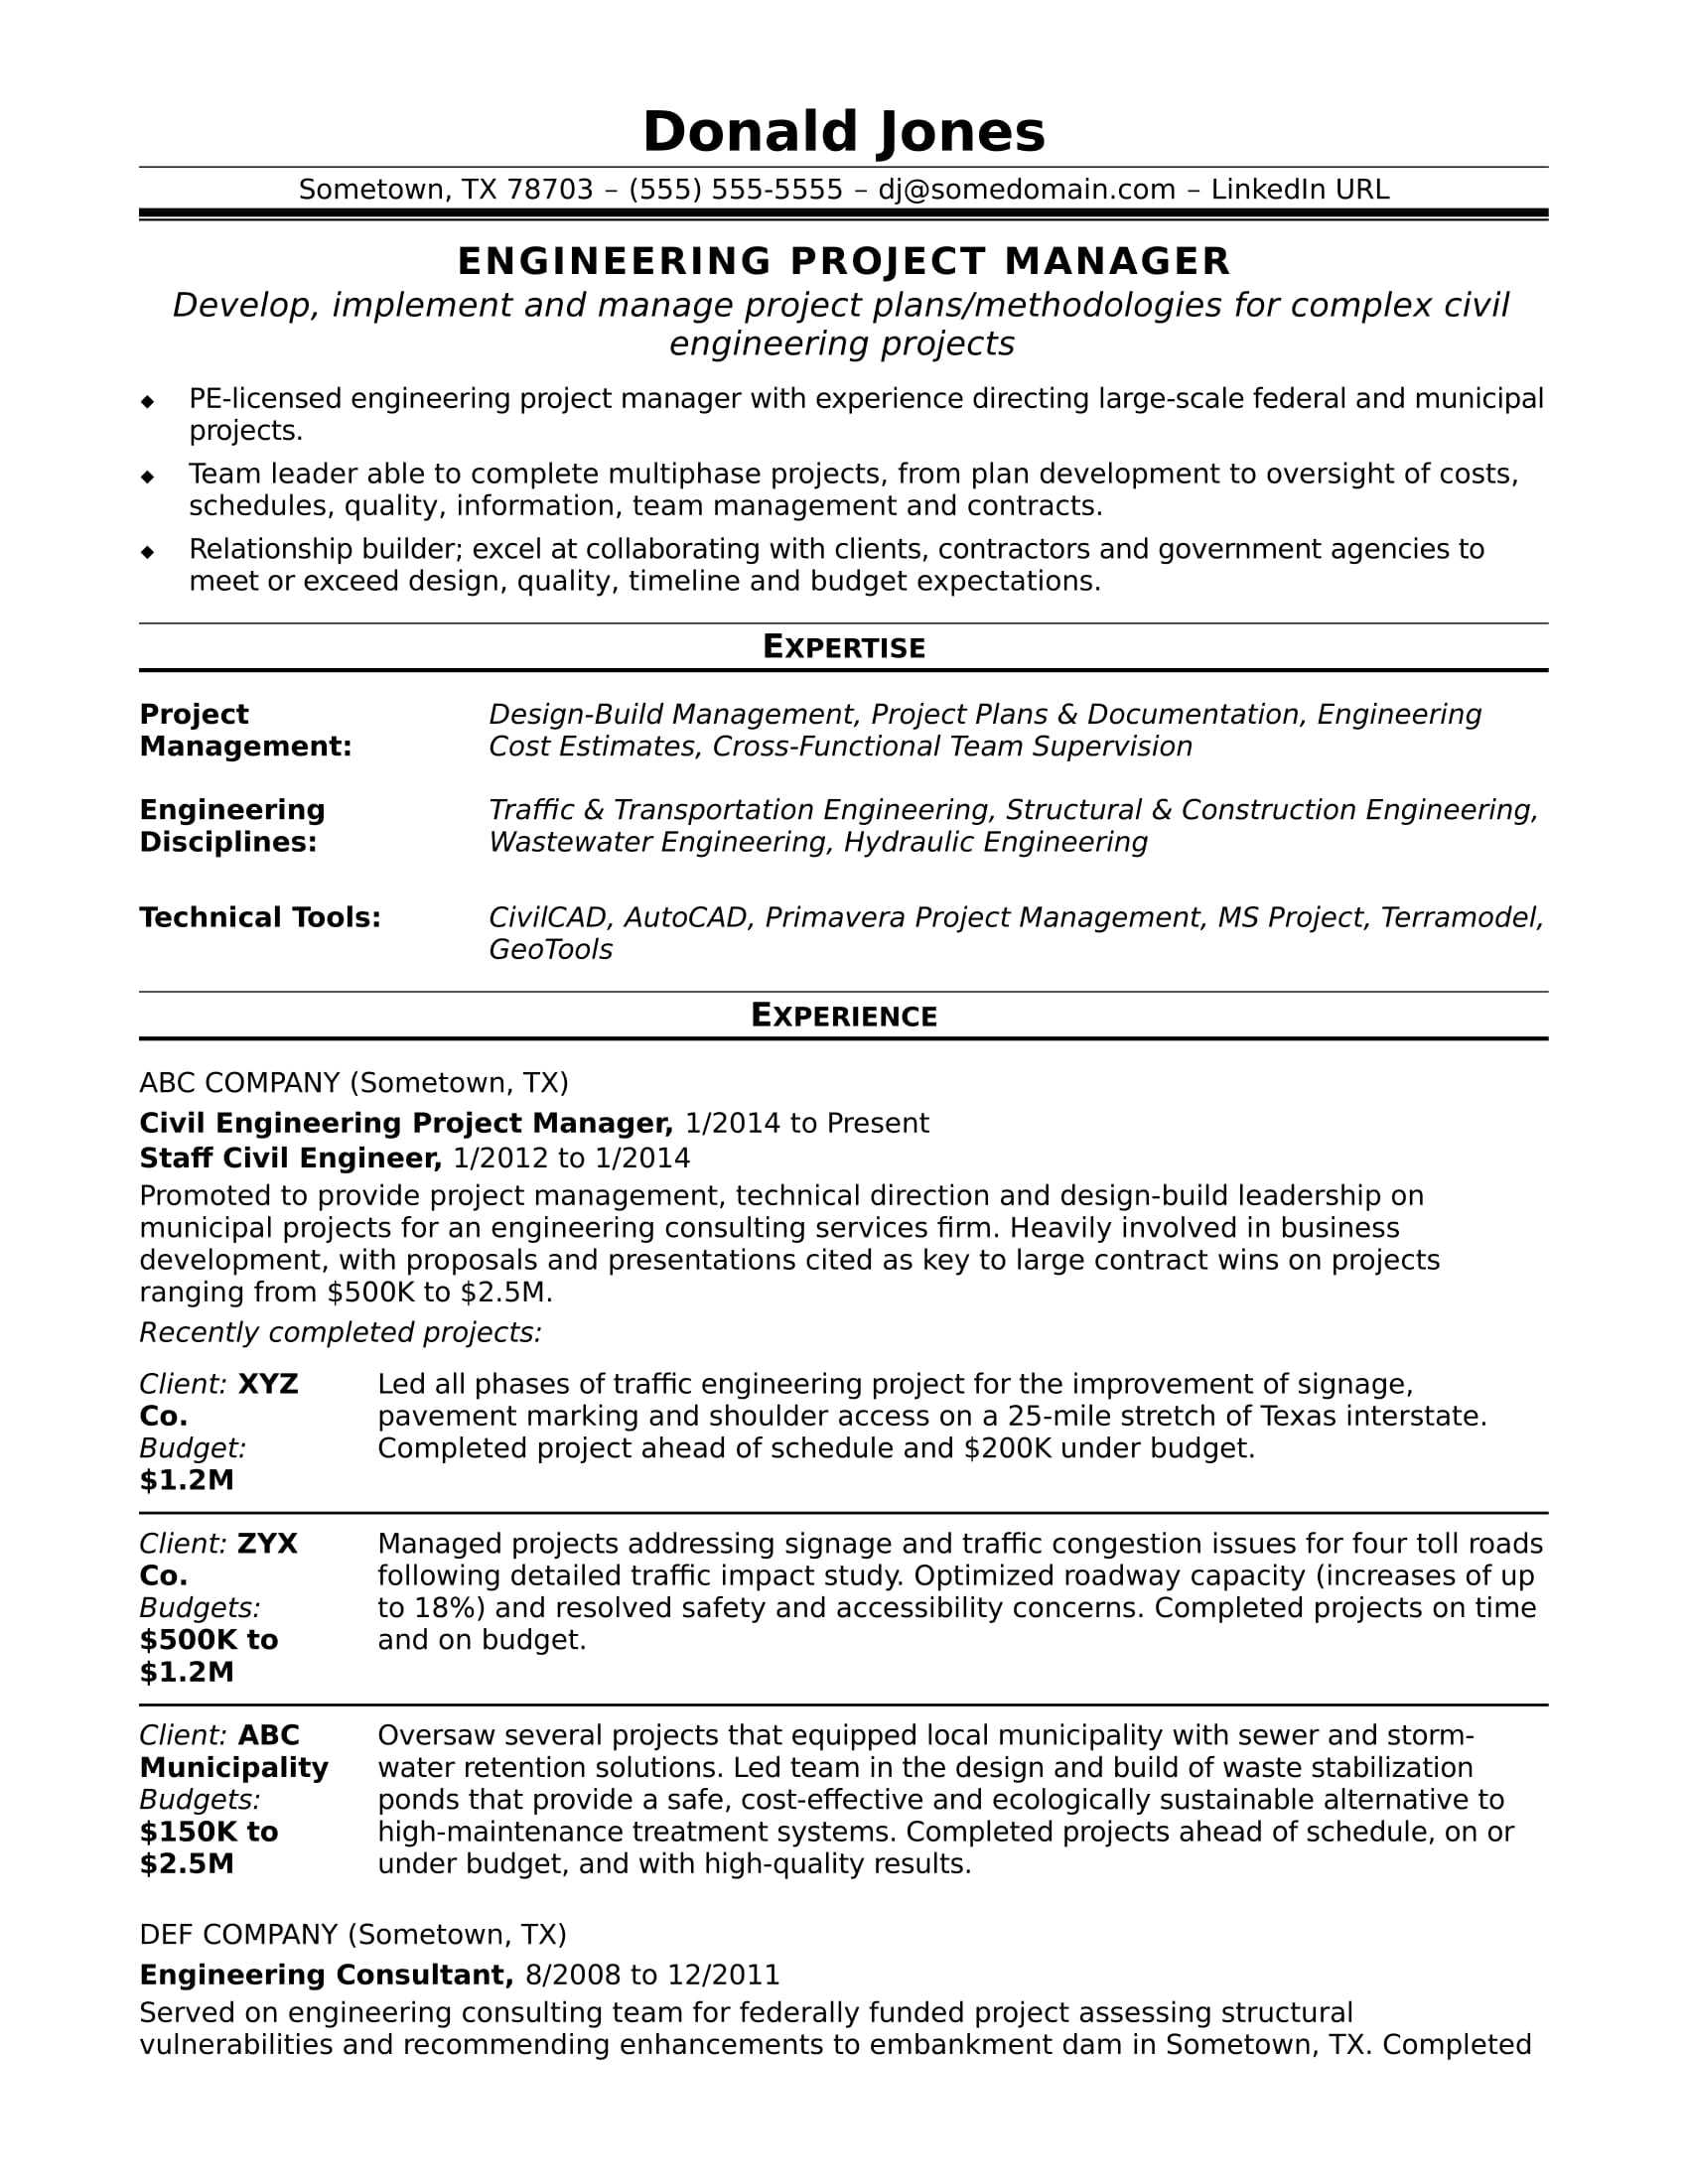 sample resume for a midlevel engineering project manager - Projects On Resume